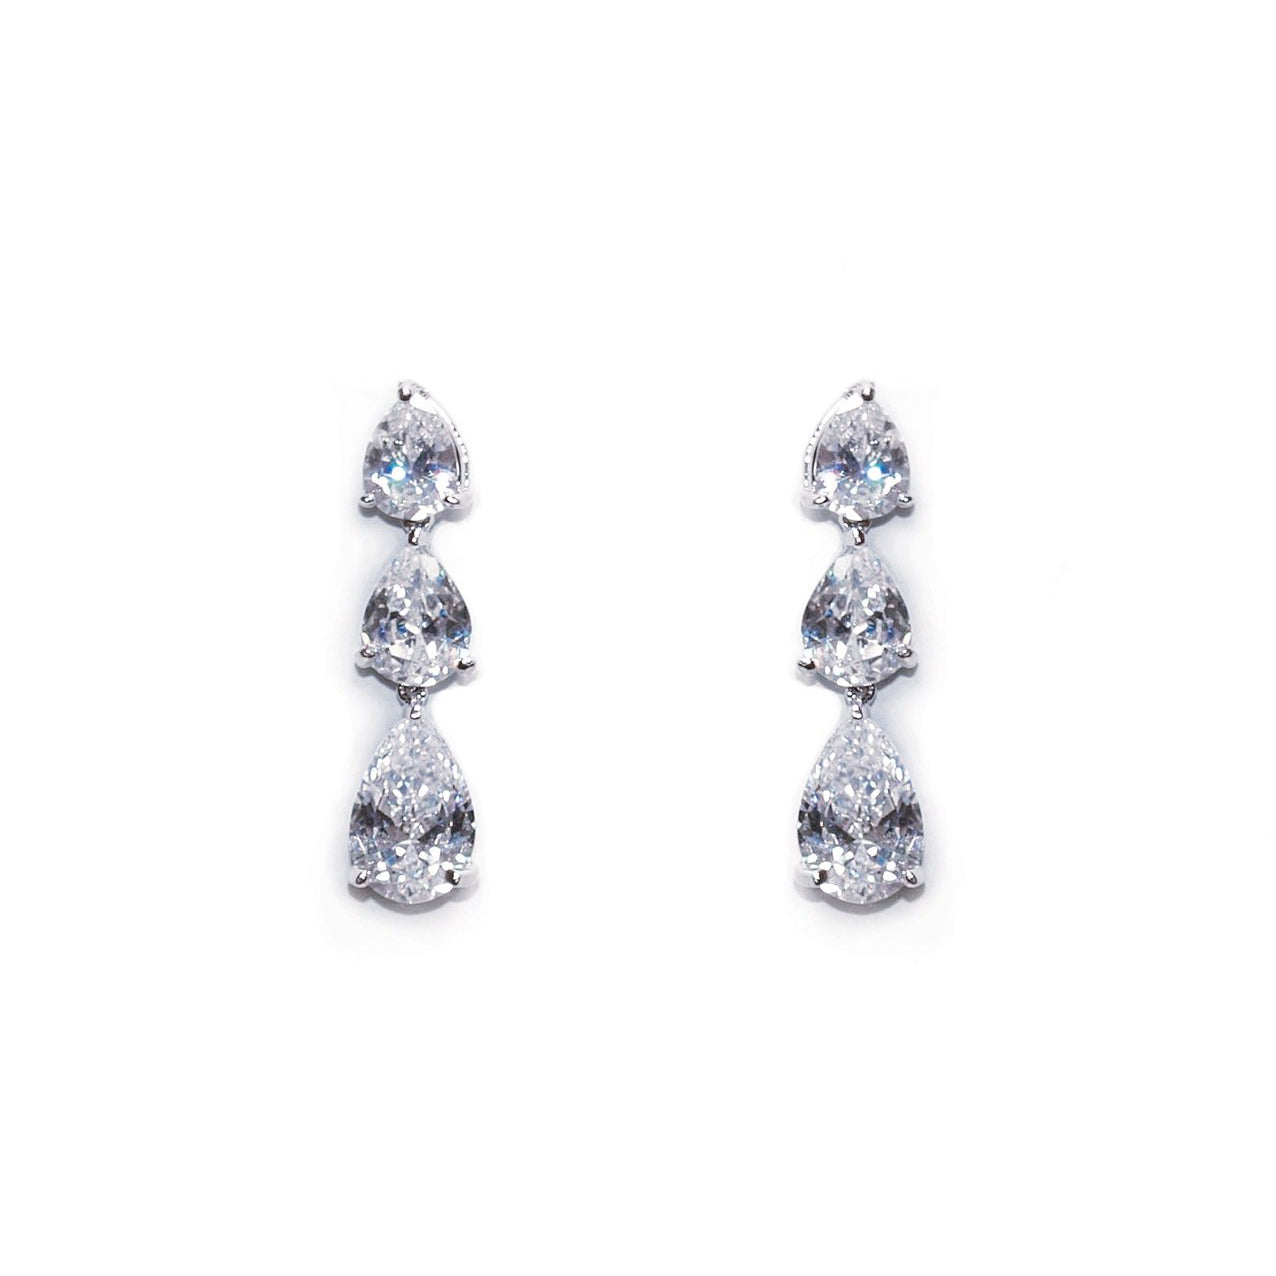 BOUCLES D'OREILLES<br>Purity - MP Paris